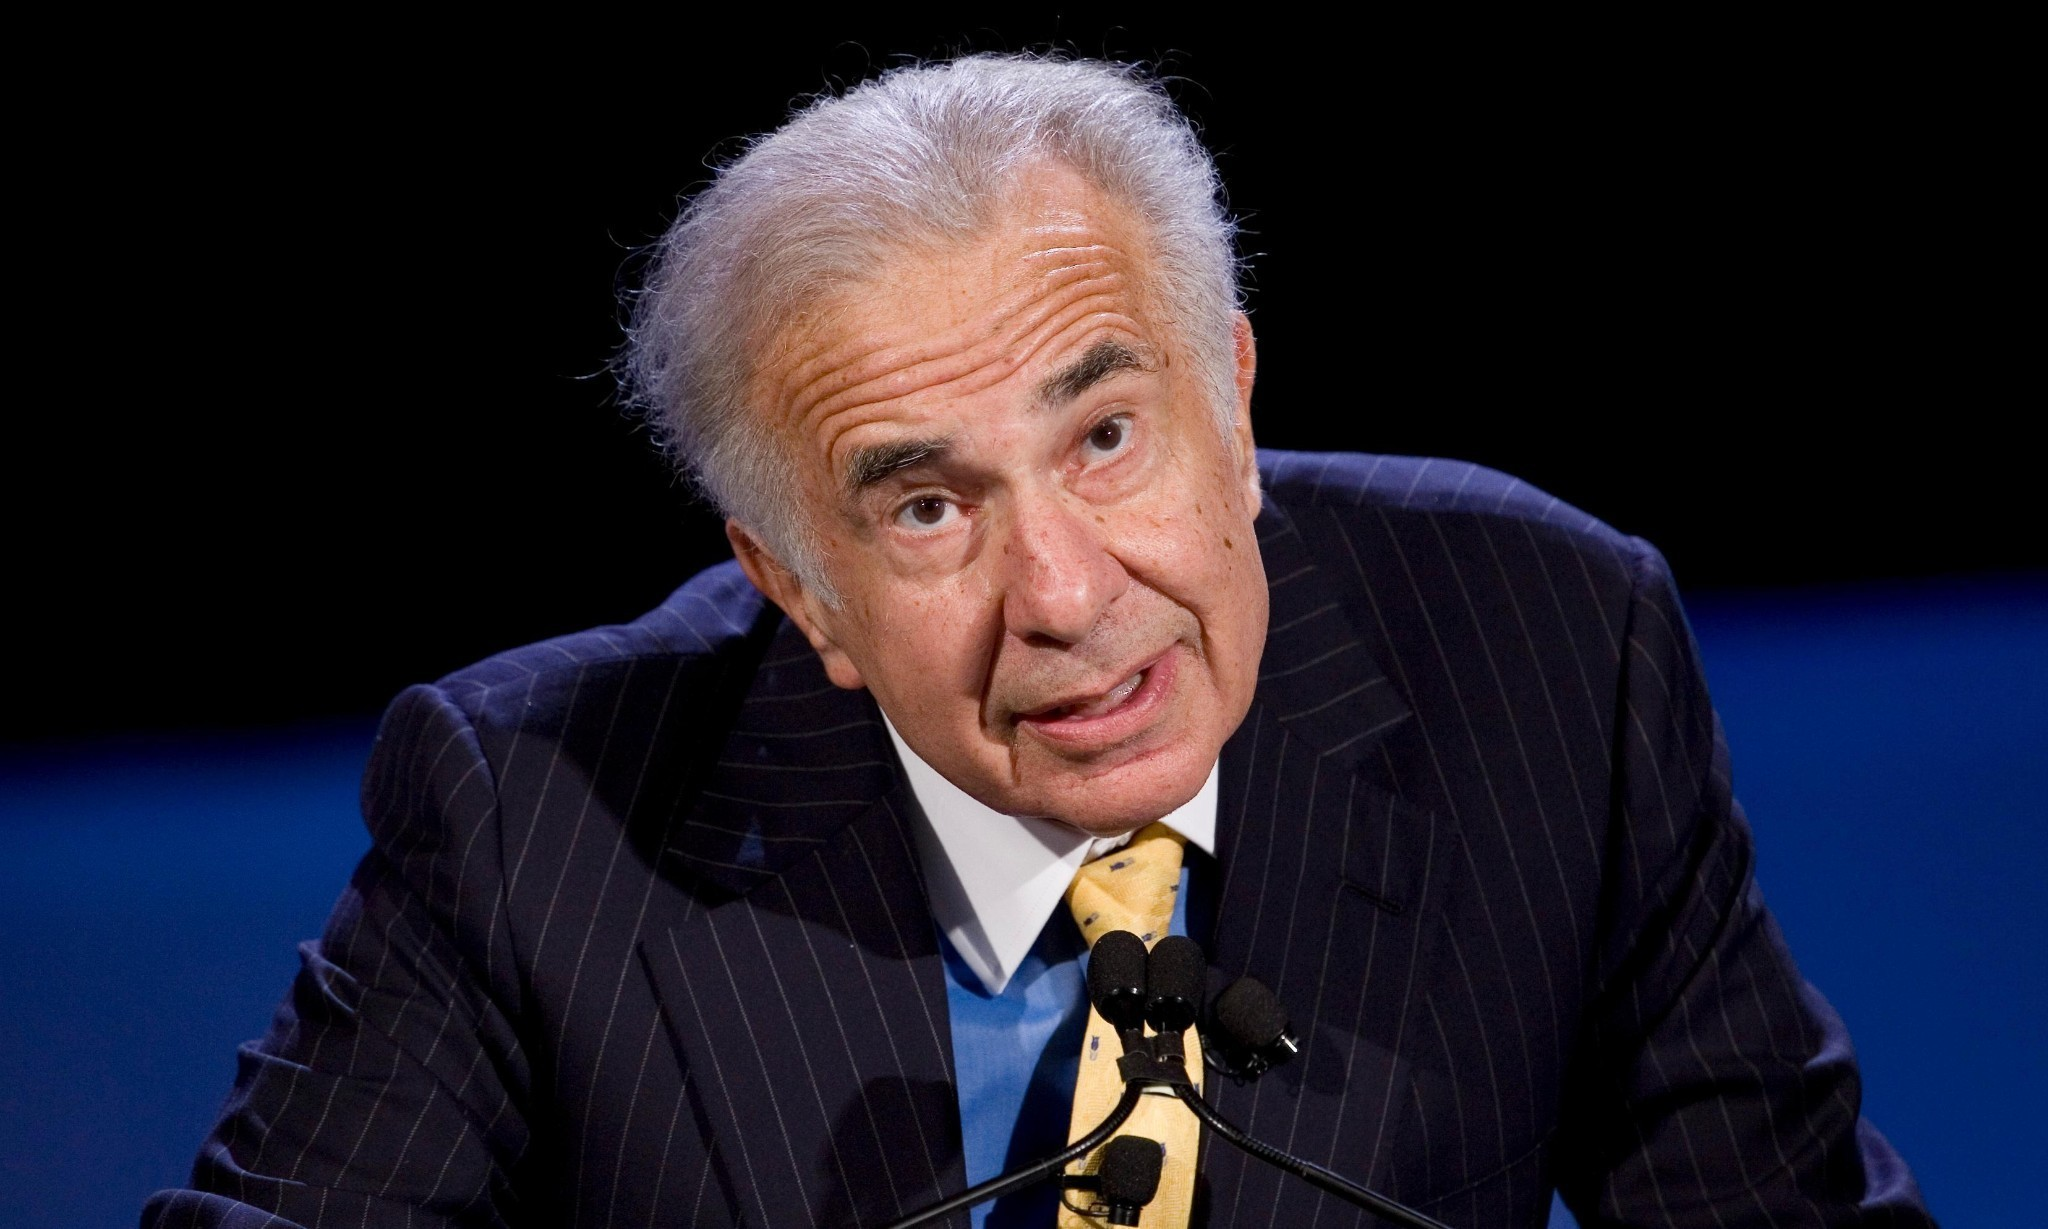 Trump adds billionaire Carl Icahn to team as special adviser on regulation